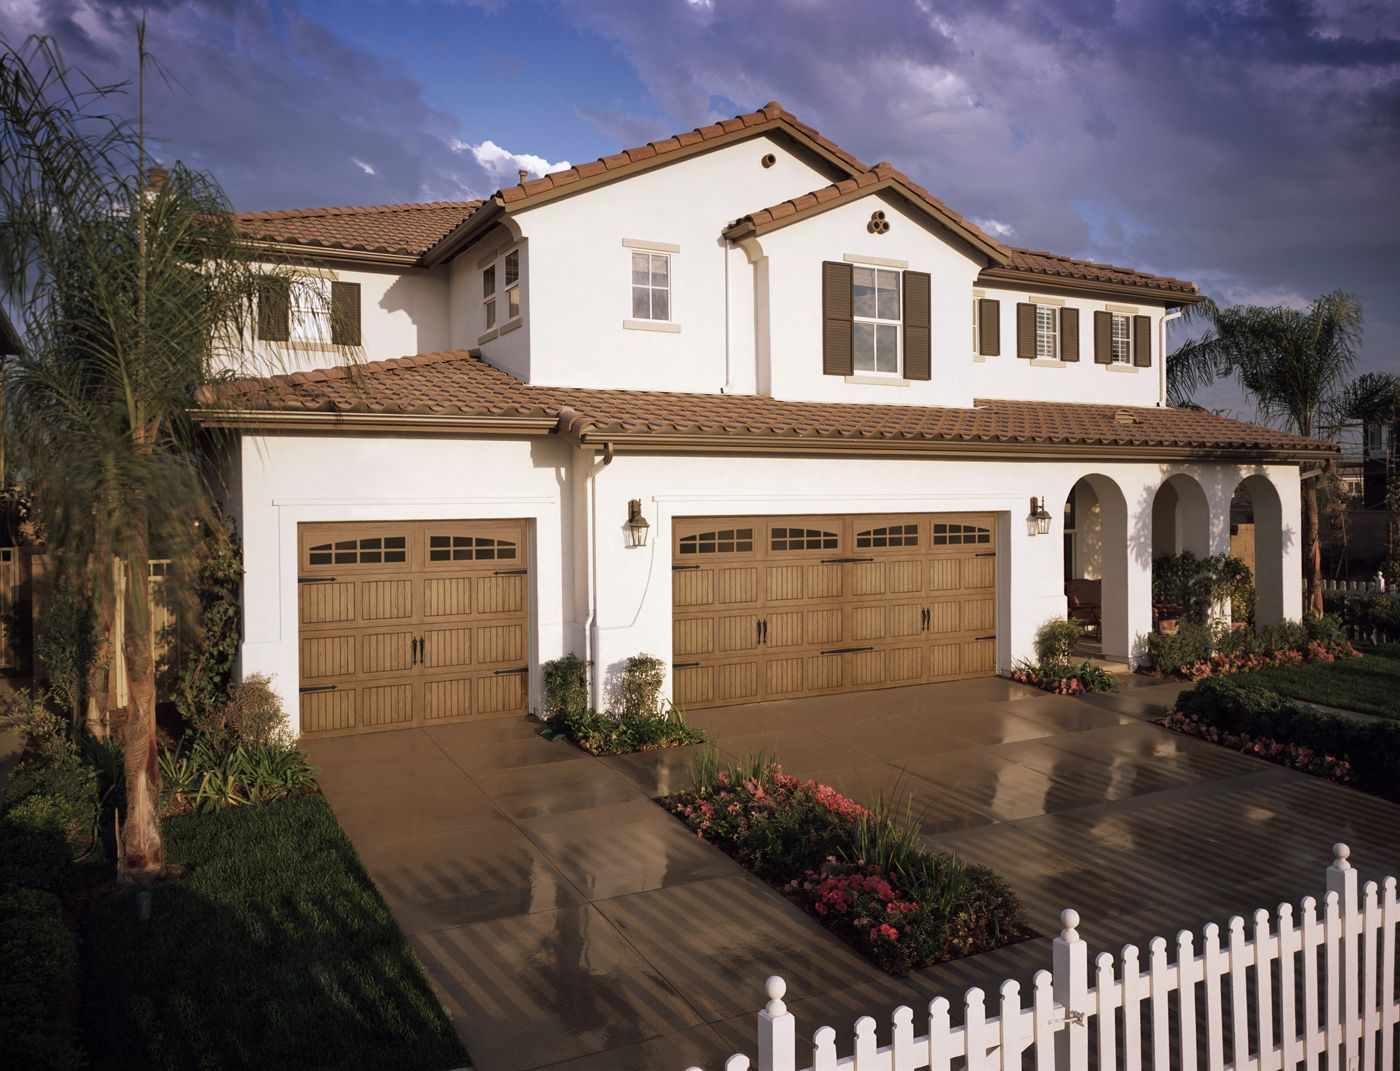 Overhead Door overhead door little rock images : Accent garage doors by C.H.I. Overhead Doors | Accents Woodtones ...